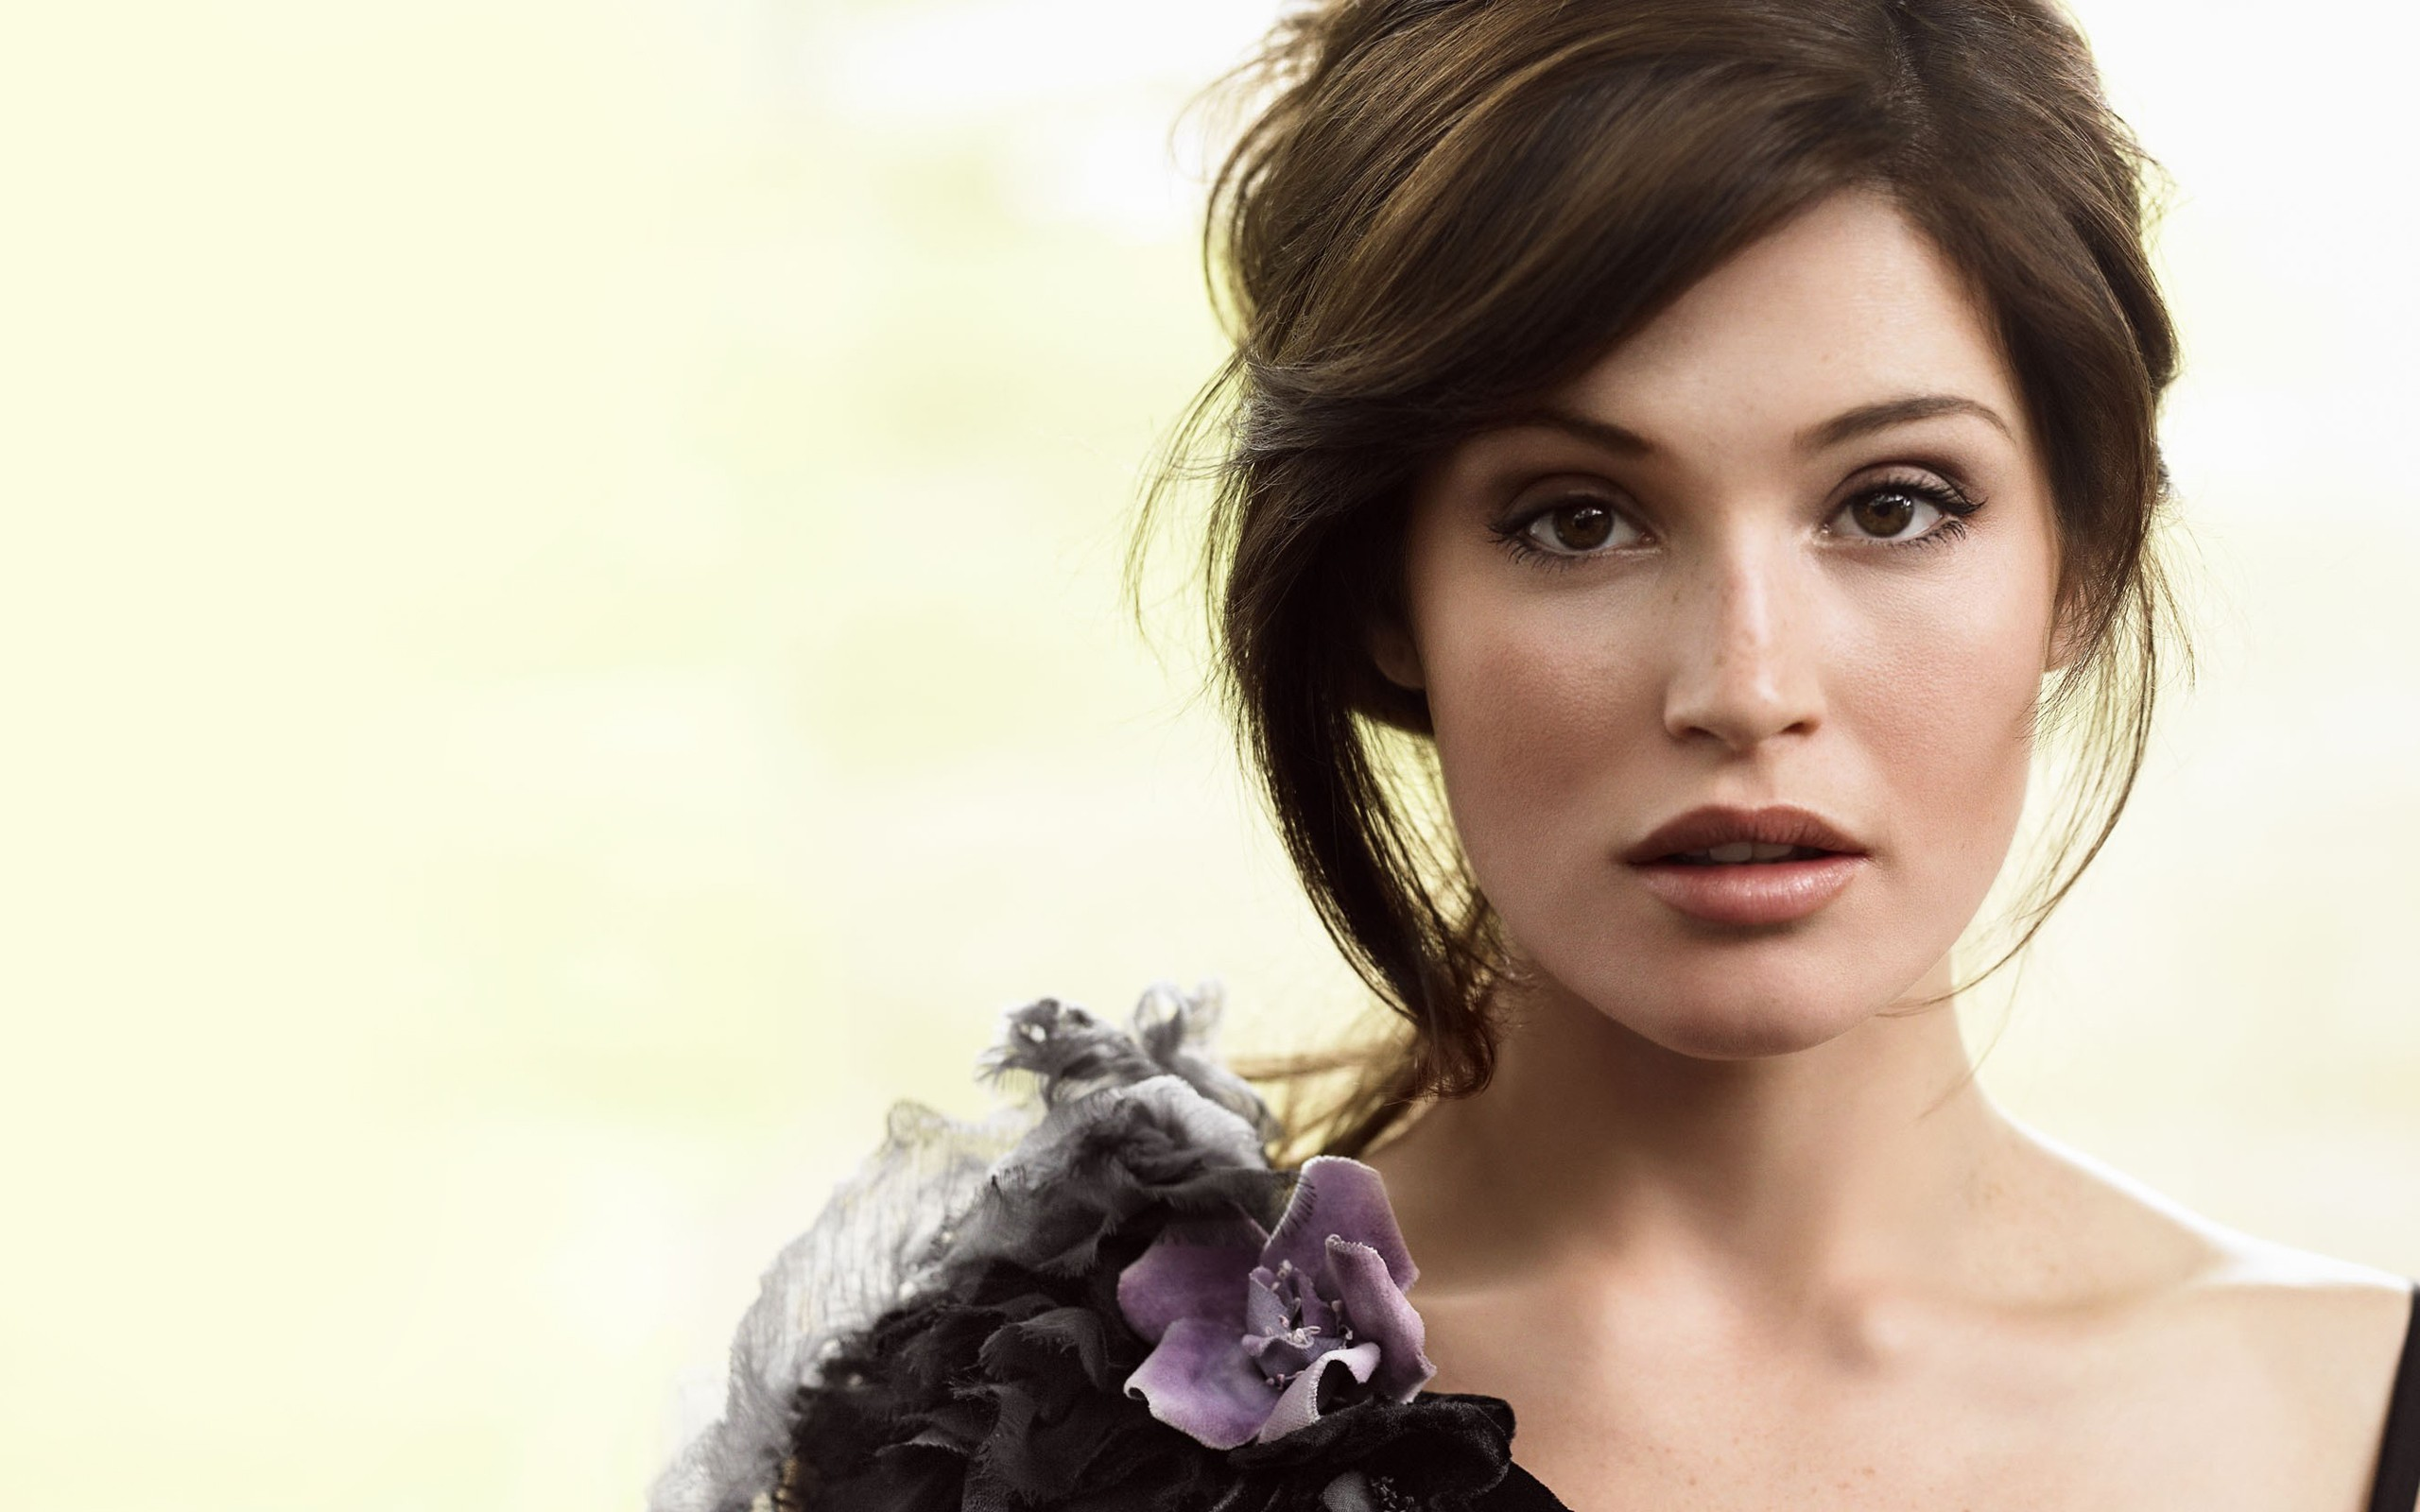 Gemma Arterton wallpapers for desktop